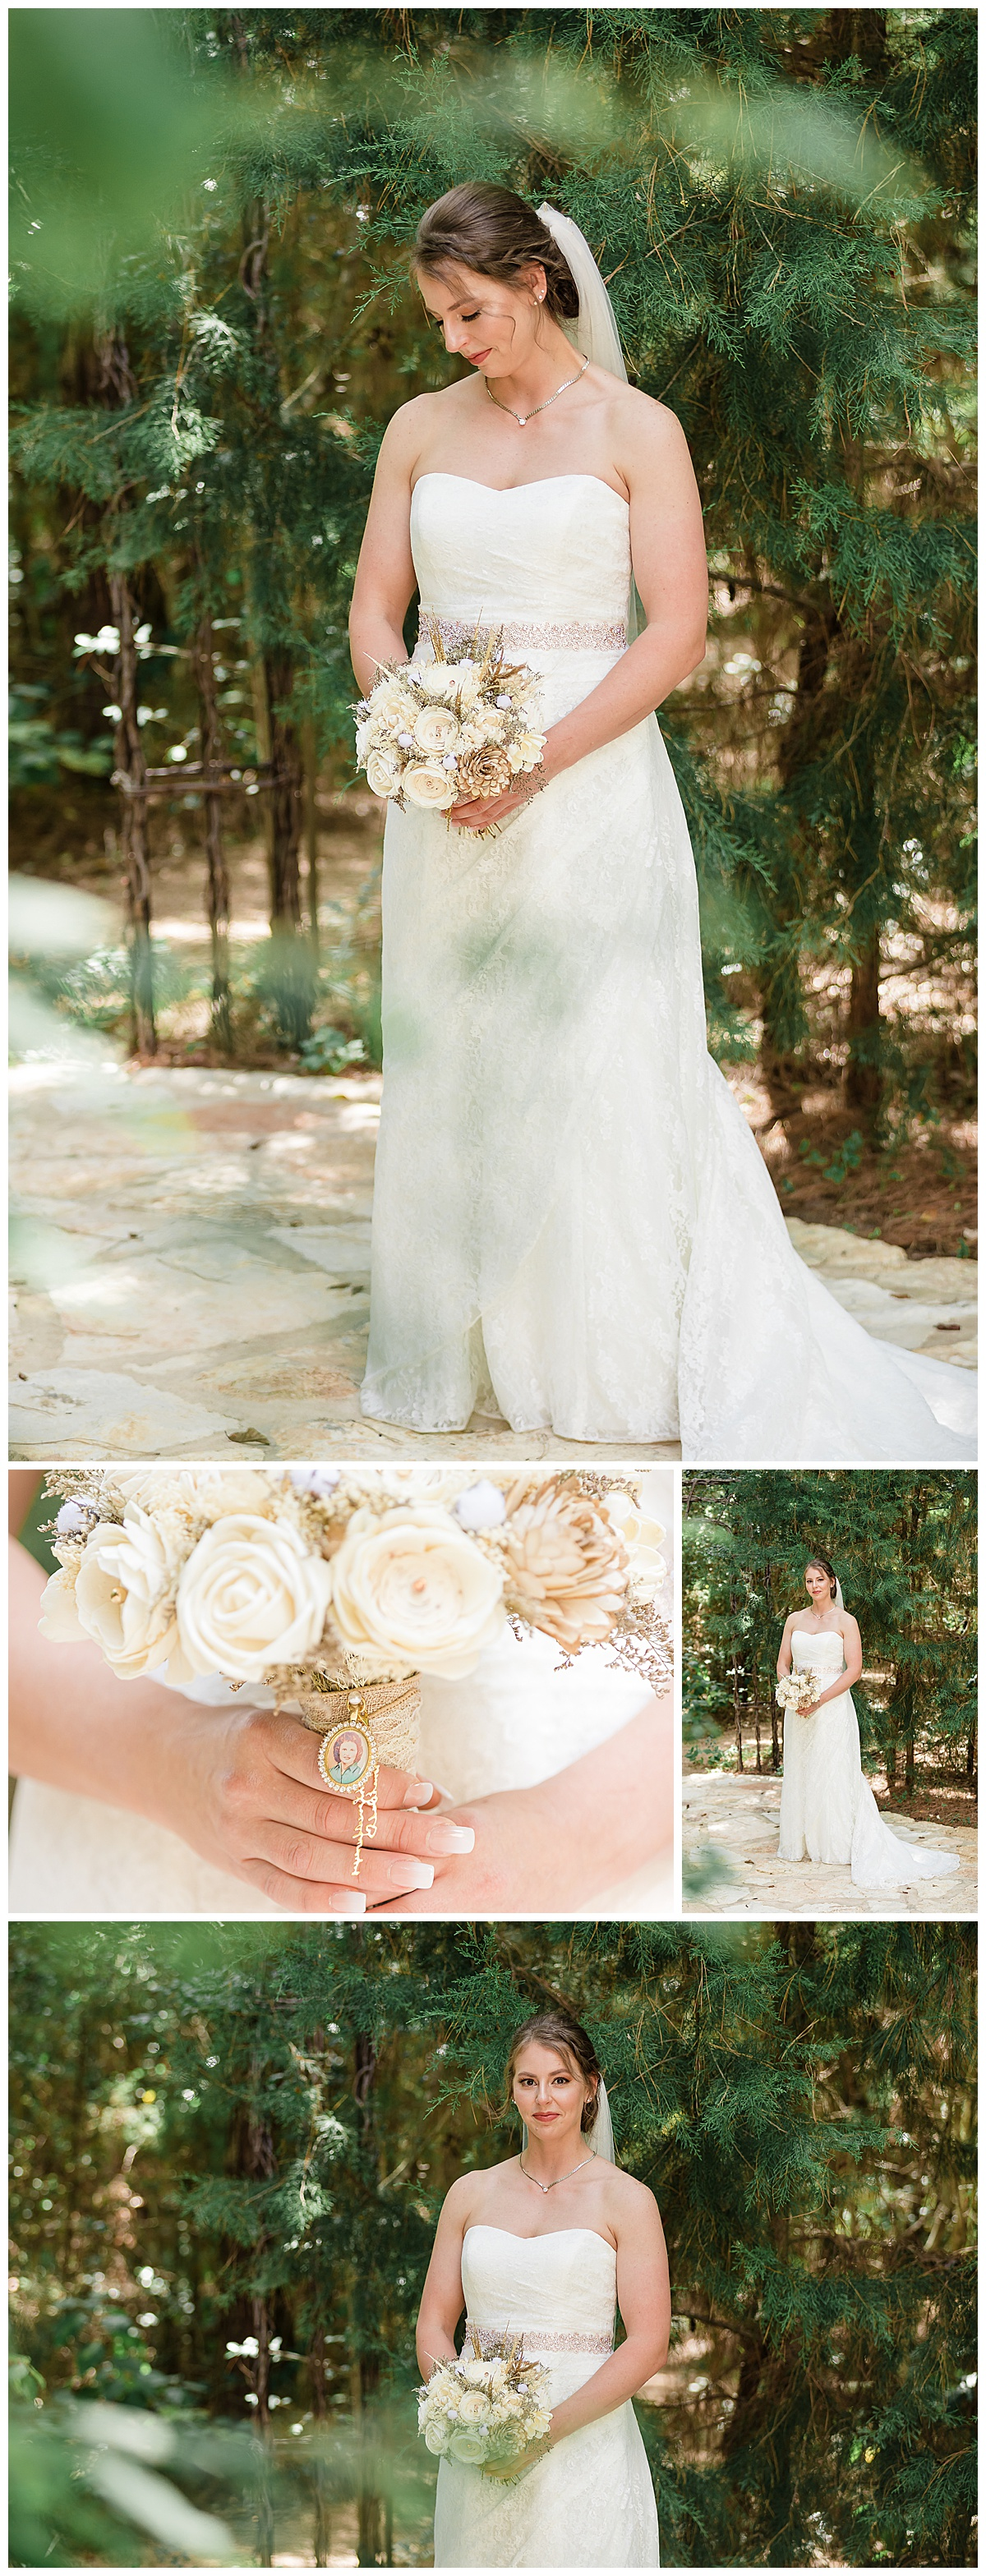 Texas-Magnolia-Bells-Rustic-Wedding-Carly-Barton-Photography_0005.jpg